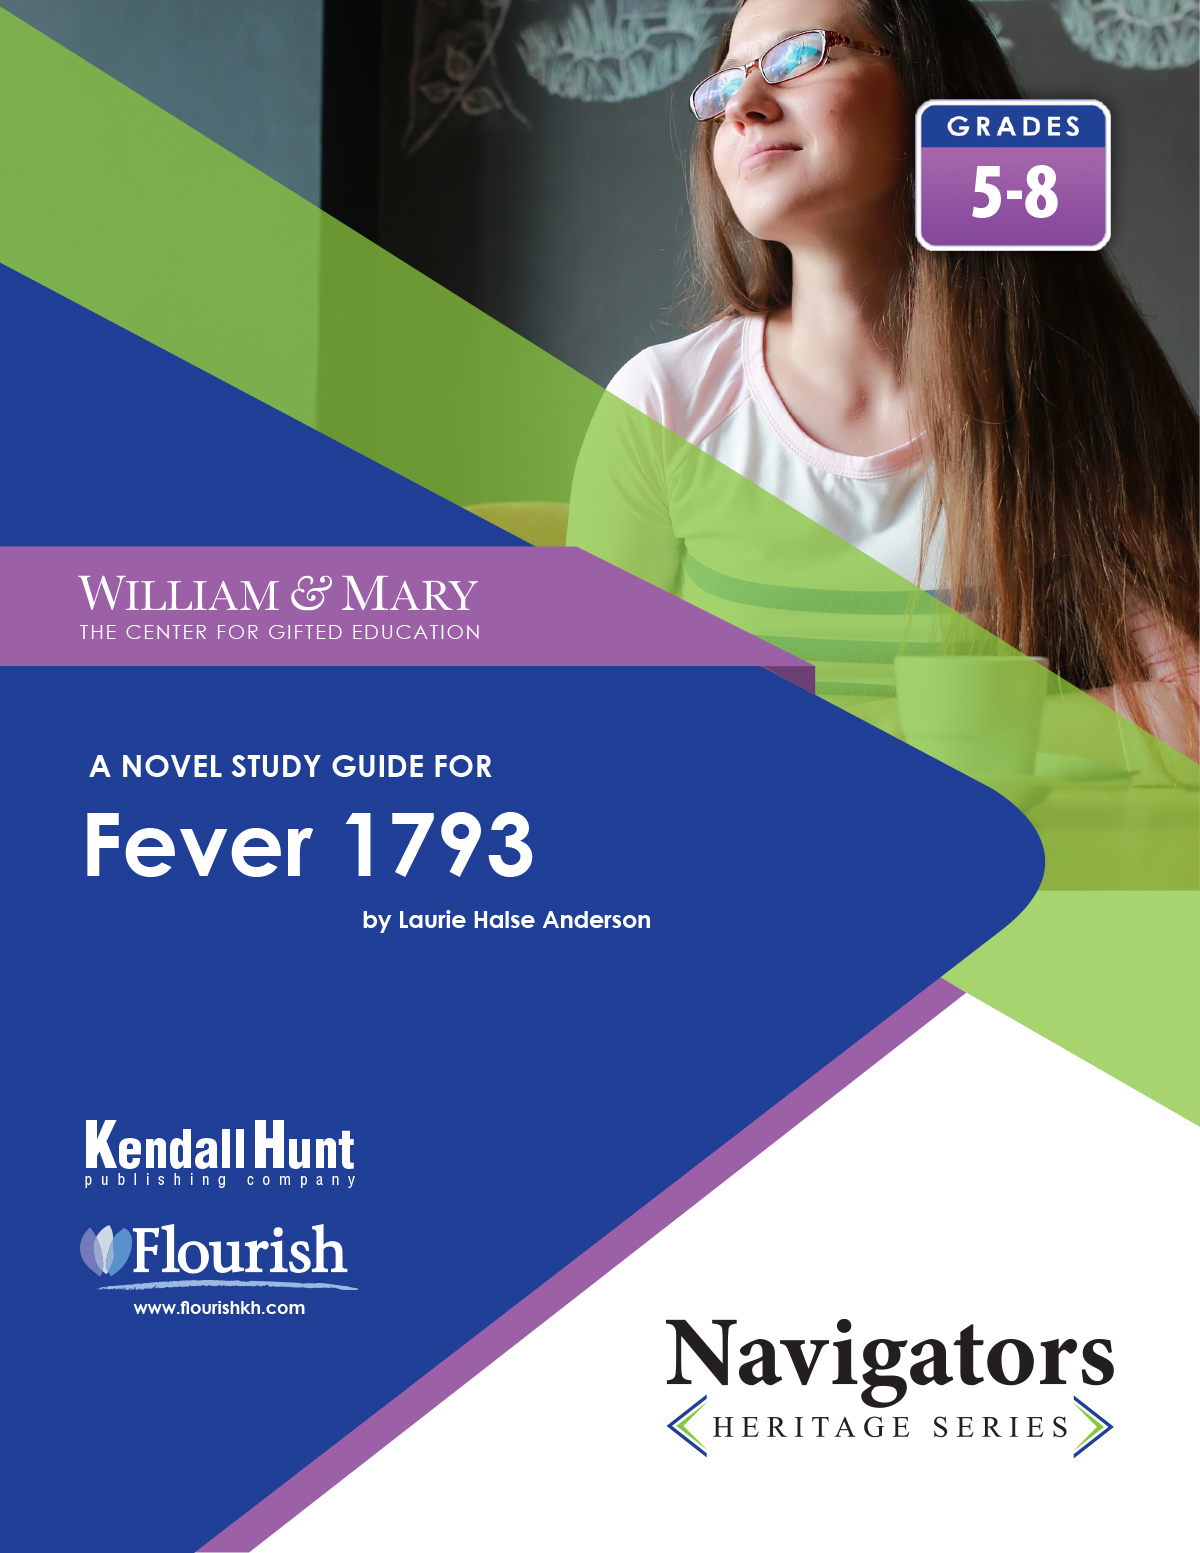 William & Mary Navigator Fever of 1793